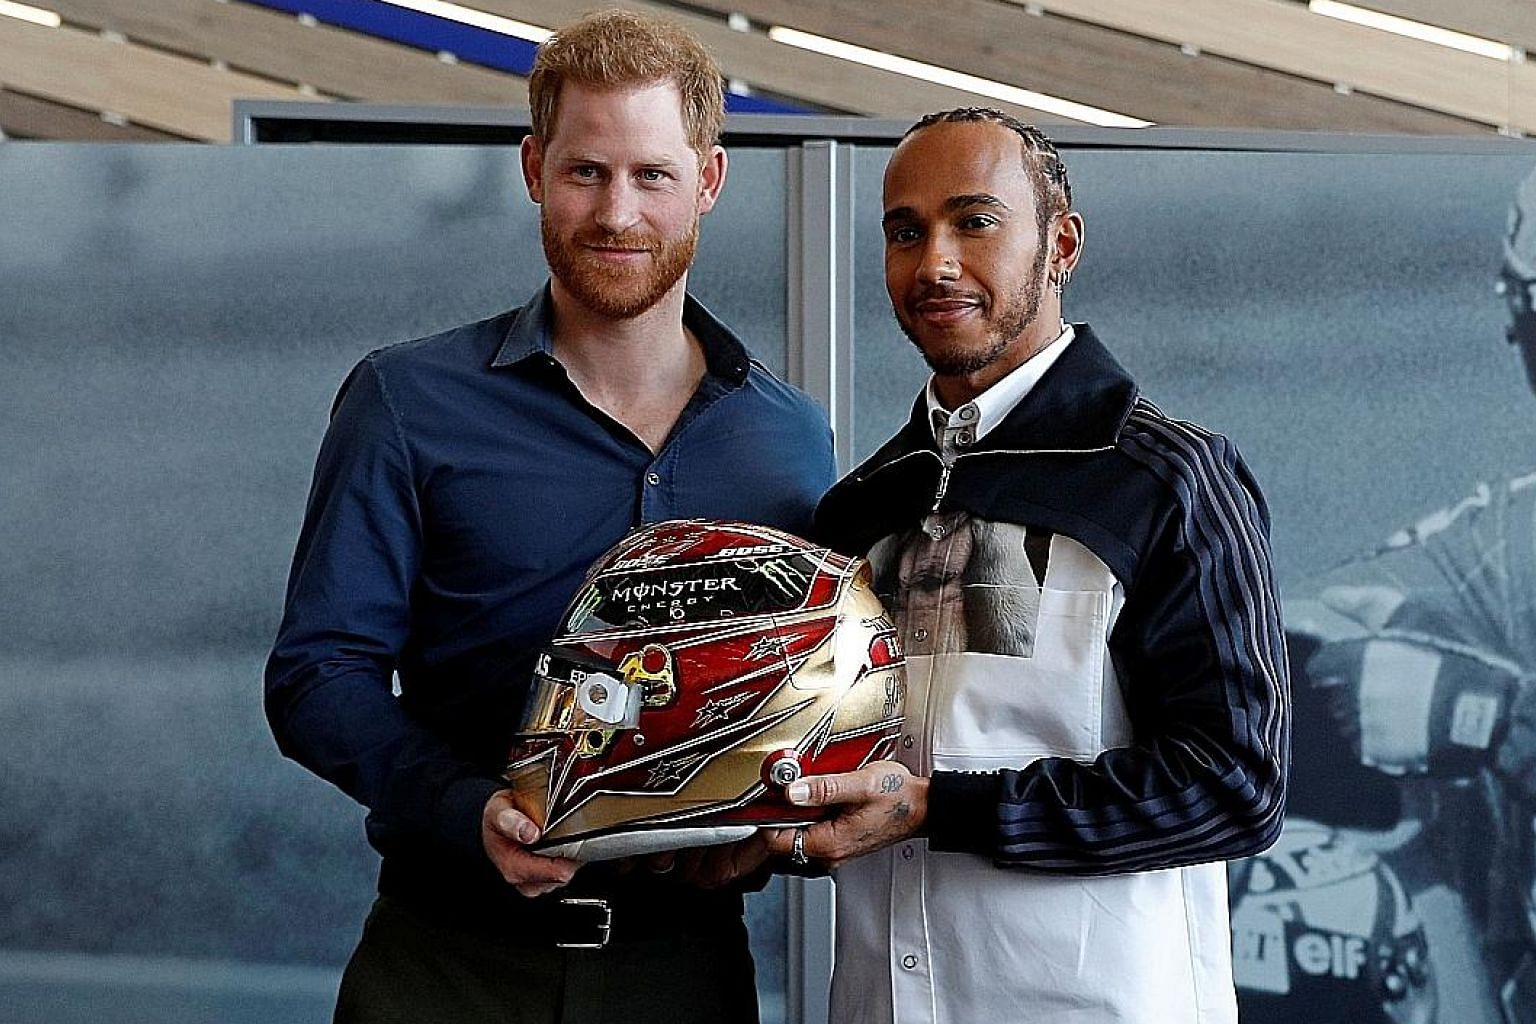 Britain's Prince Harry and Mercedes' F1 world champion driver Lewis Hamilton during the official opening of Silverstone Experience, the British motor racing museum, last Friday. PHOTO: AGENCE FRANCE-PRESSE